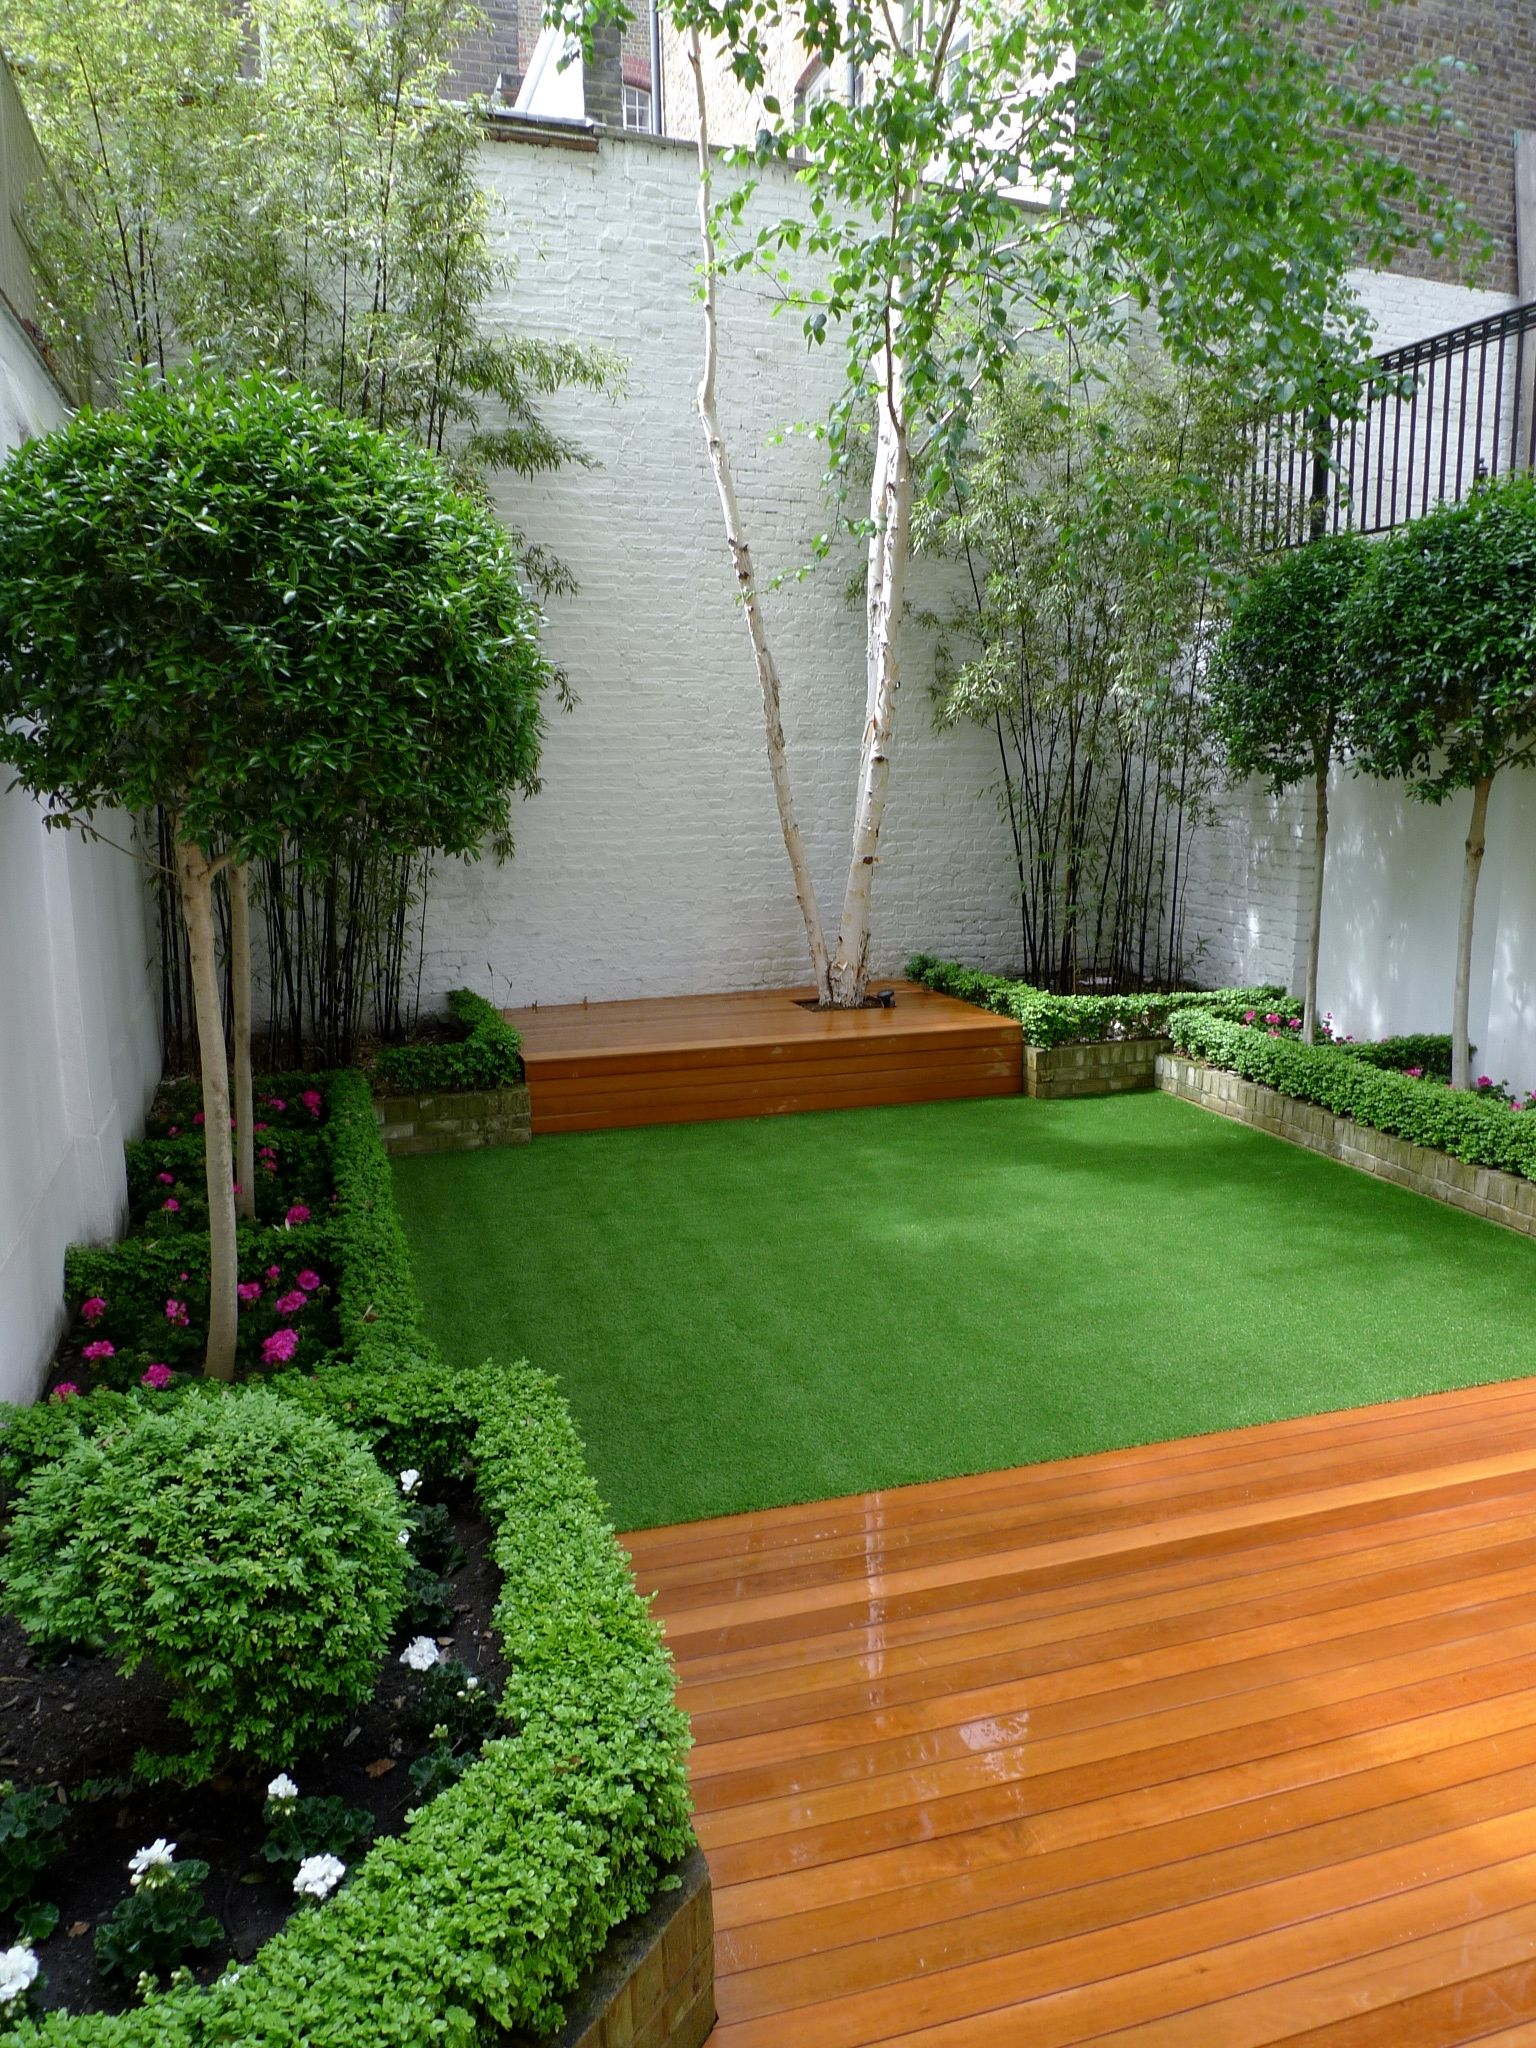 Clean Backyard clean grassy backyard. what a nice place to organize social events